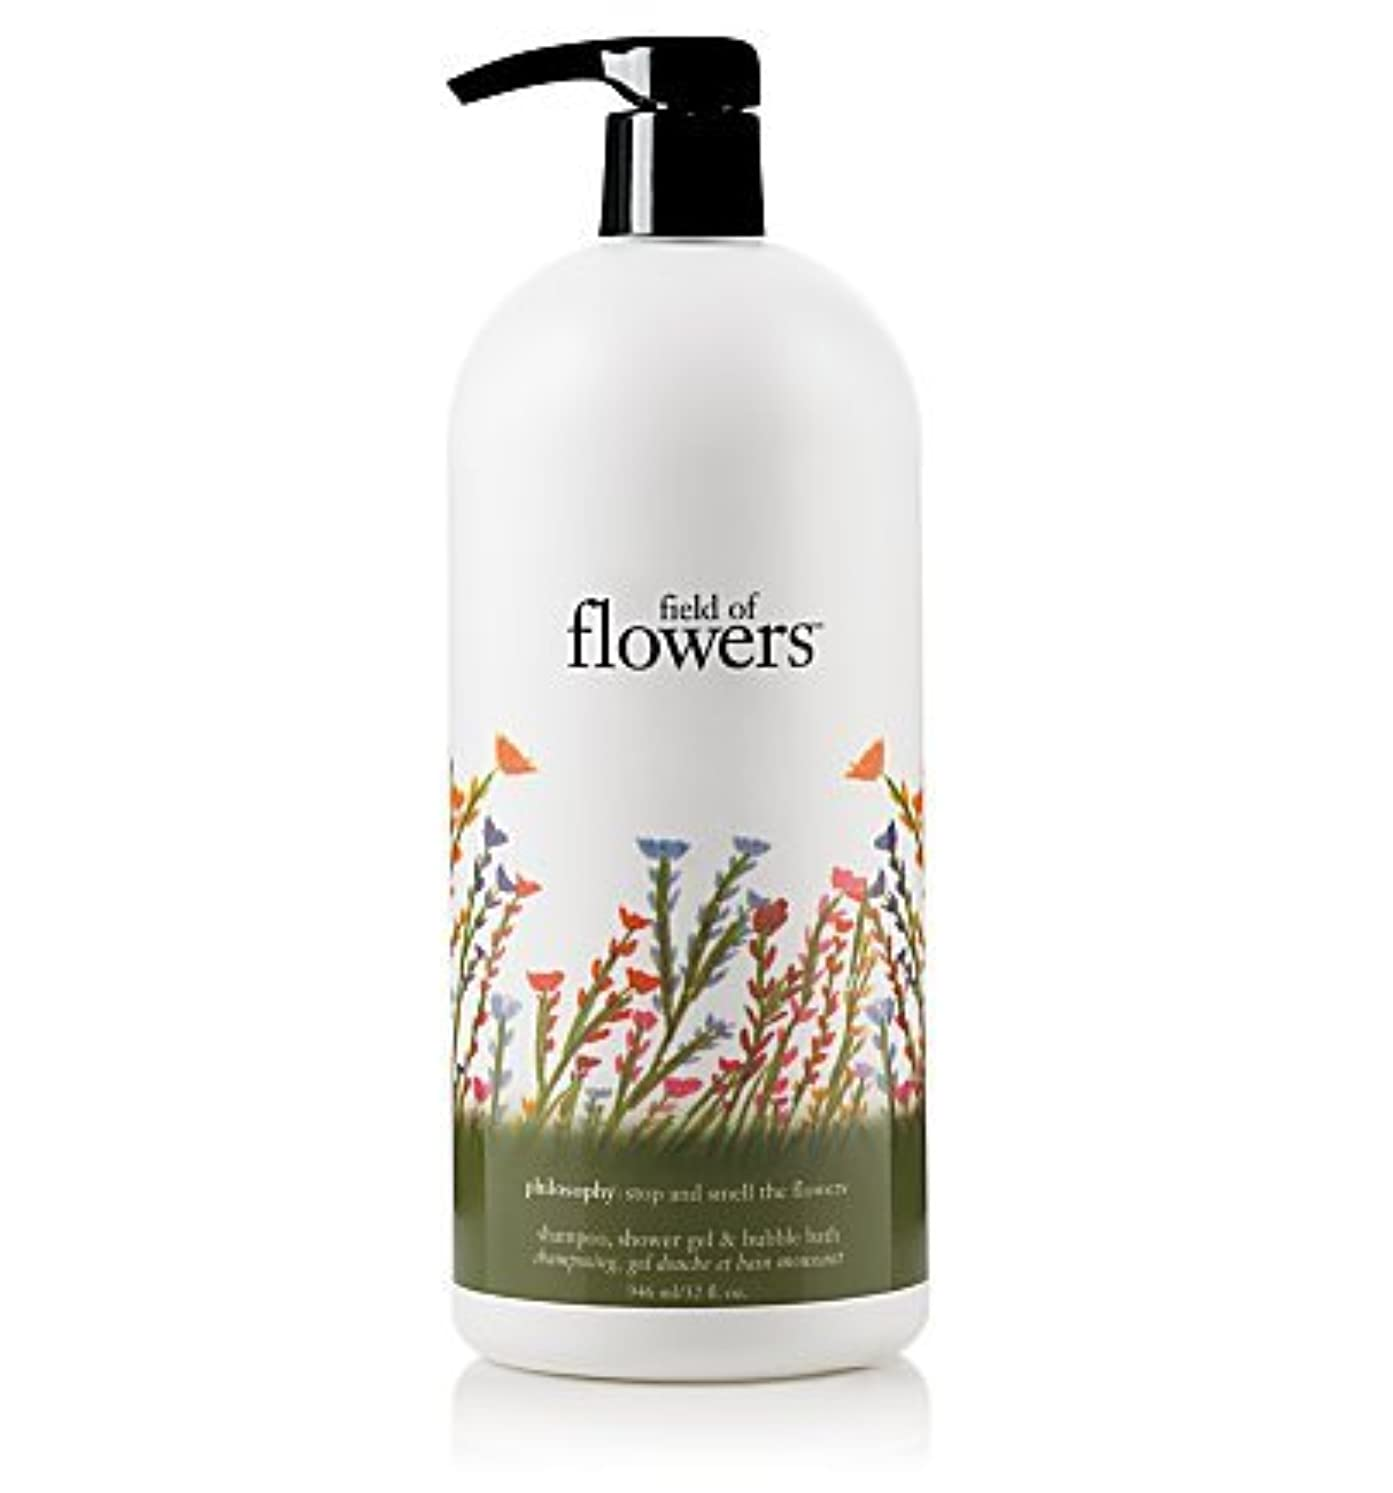 カート忠誠ハーネスfield of flowers (フィールド オブ フラワーズ) 32.0 oz (960ml) shampoo, shower gel & bubble bath for Women